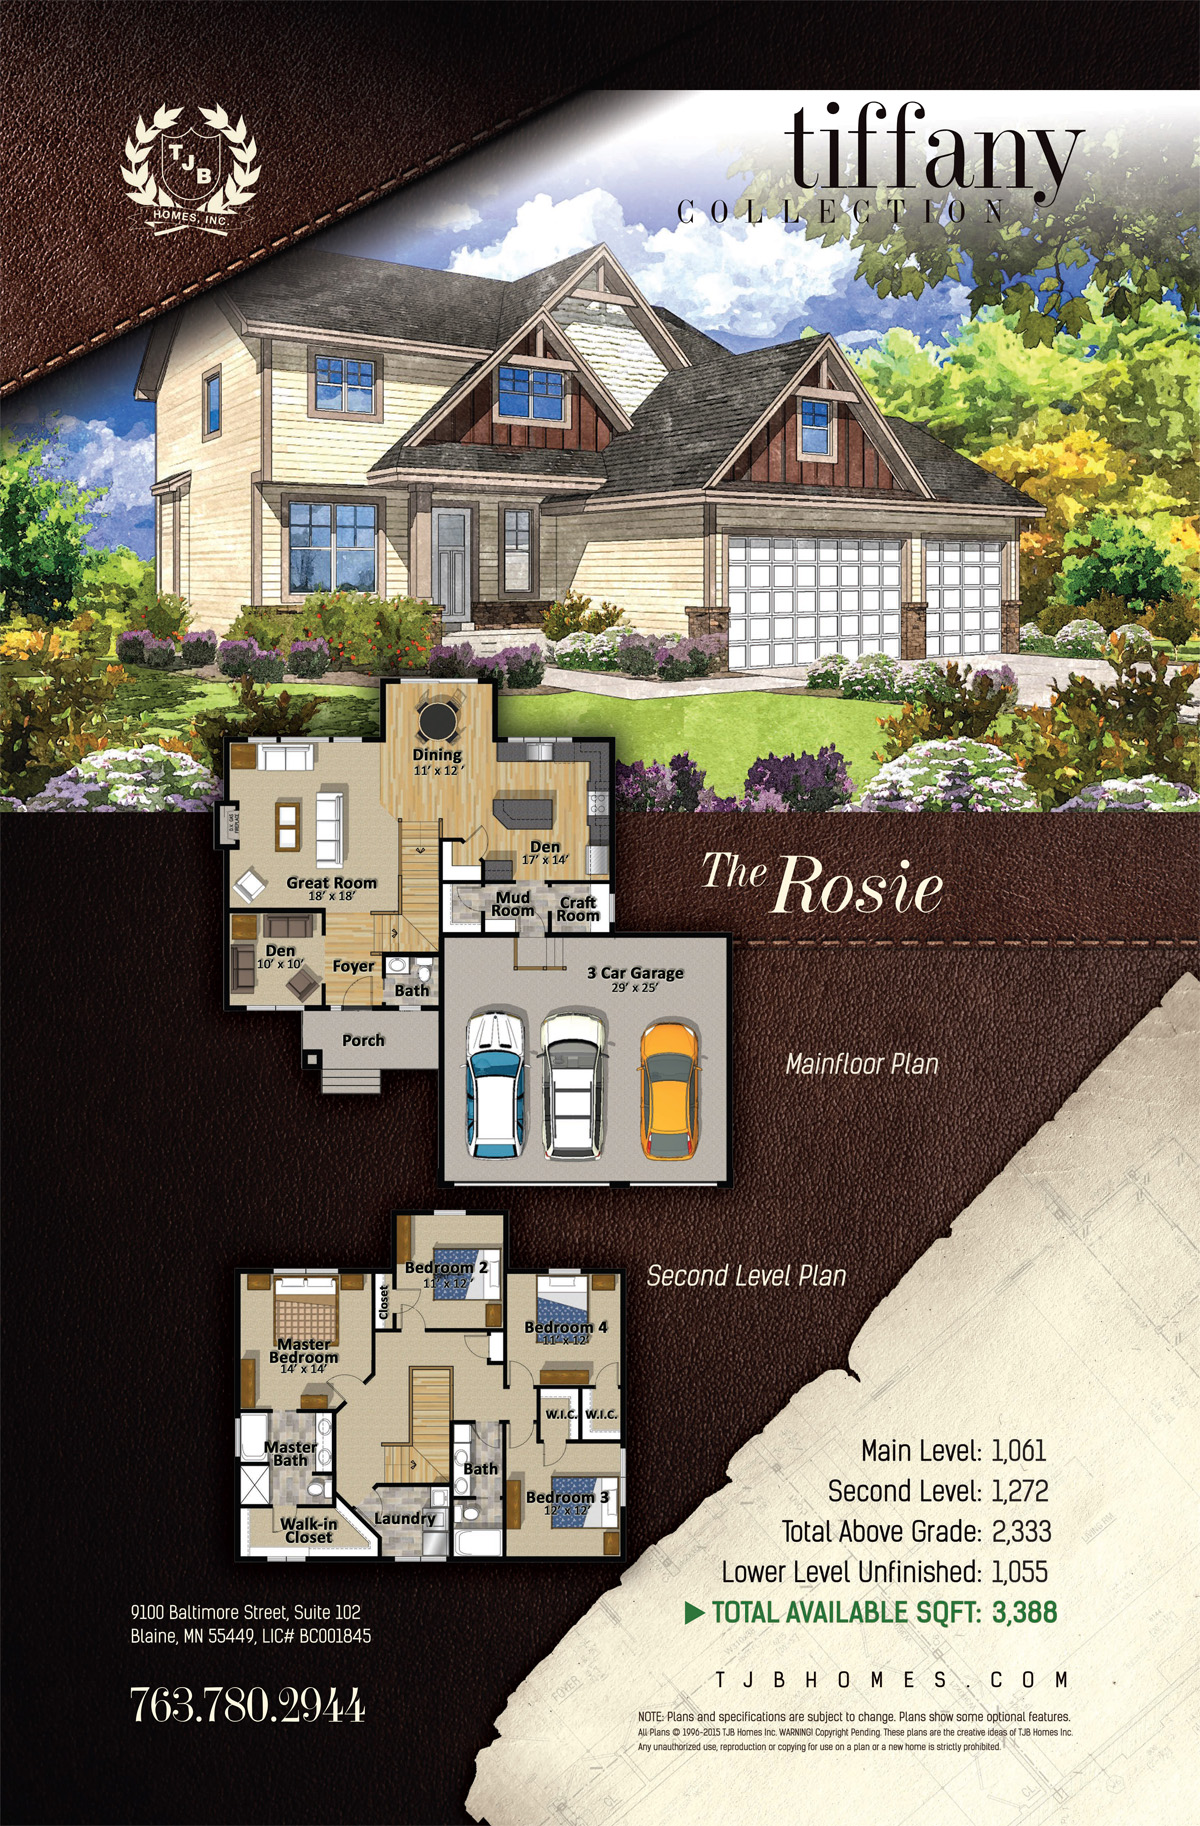 Tiffany Collection Home Plans - The Rosie